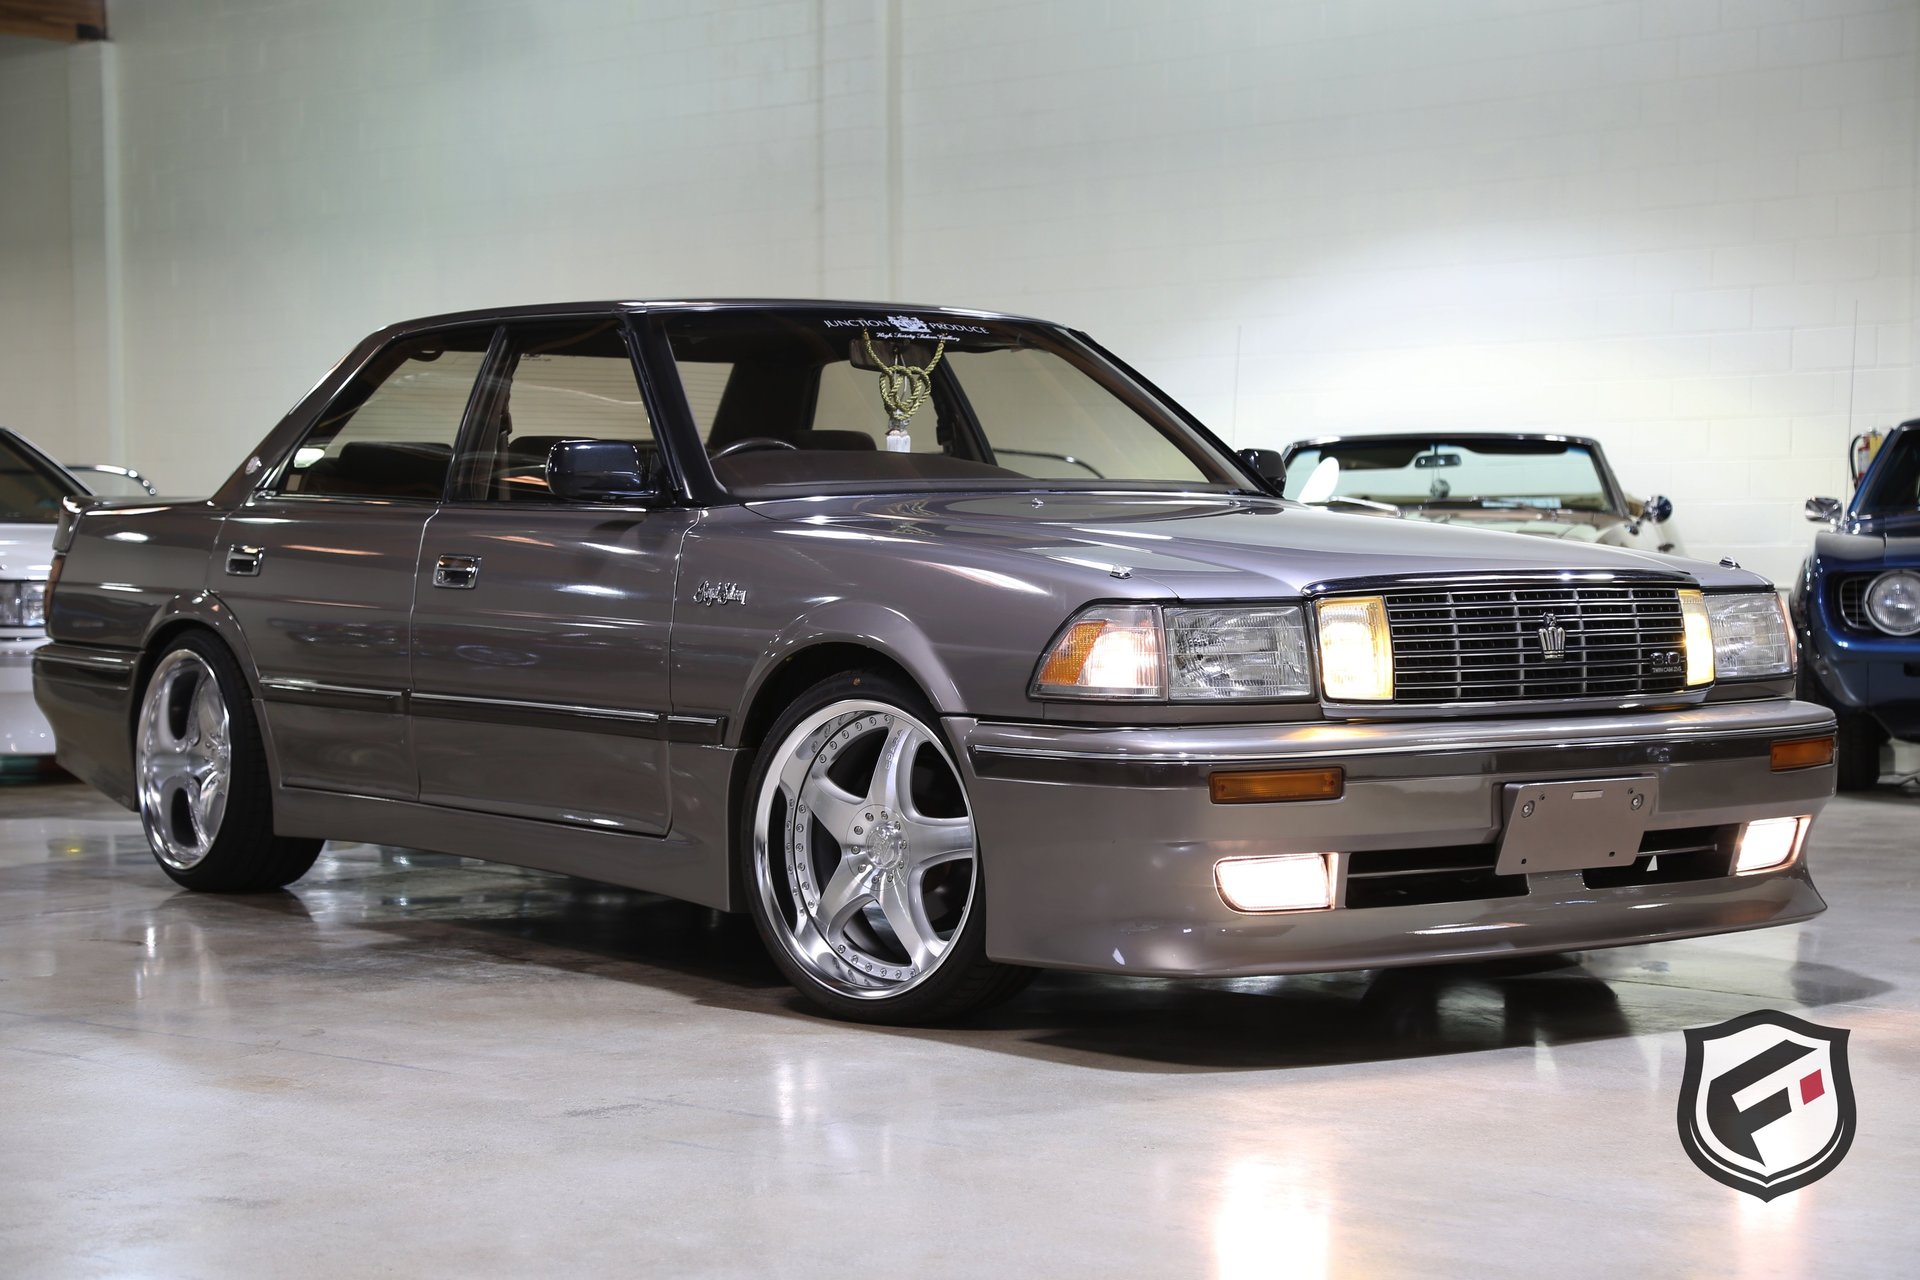 1990 Toyota Crown Fusion Luxury Motors